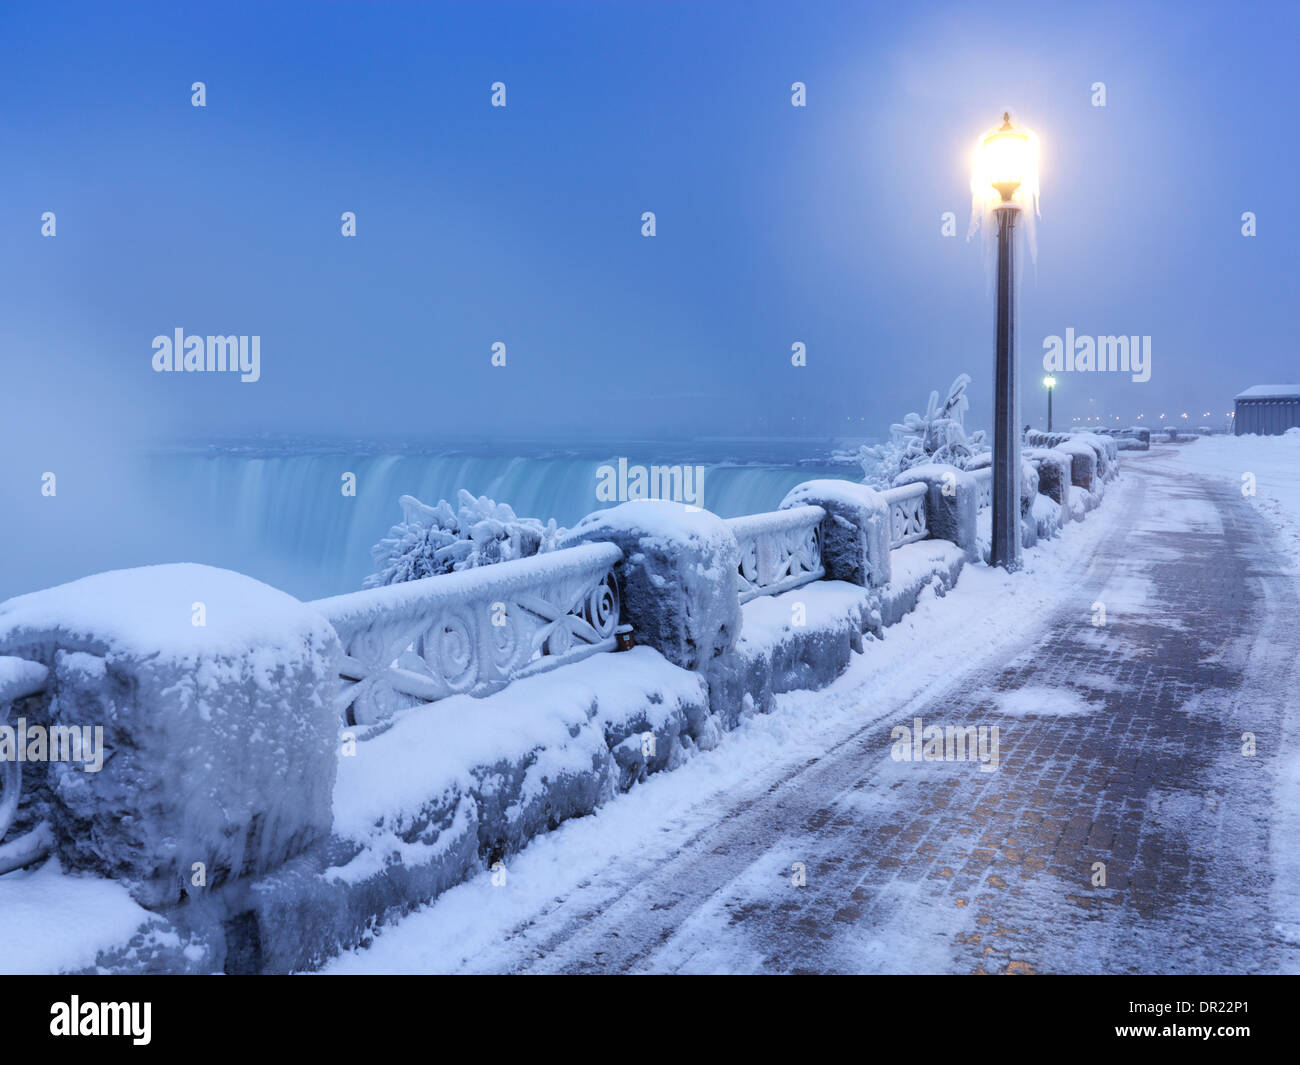 Sidewalk covered with snow and a lamp post, tranquil city scenery at Niagara Falls. Horseshoe waterfall wintertime - Stock Image